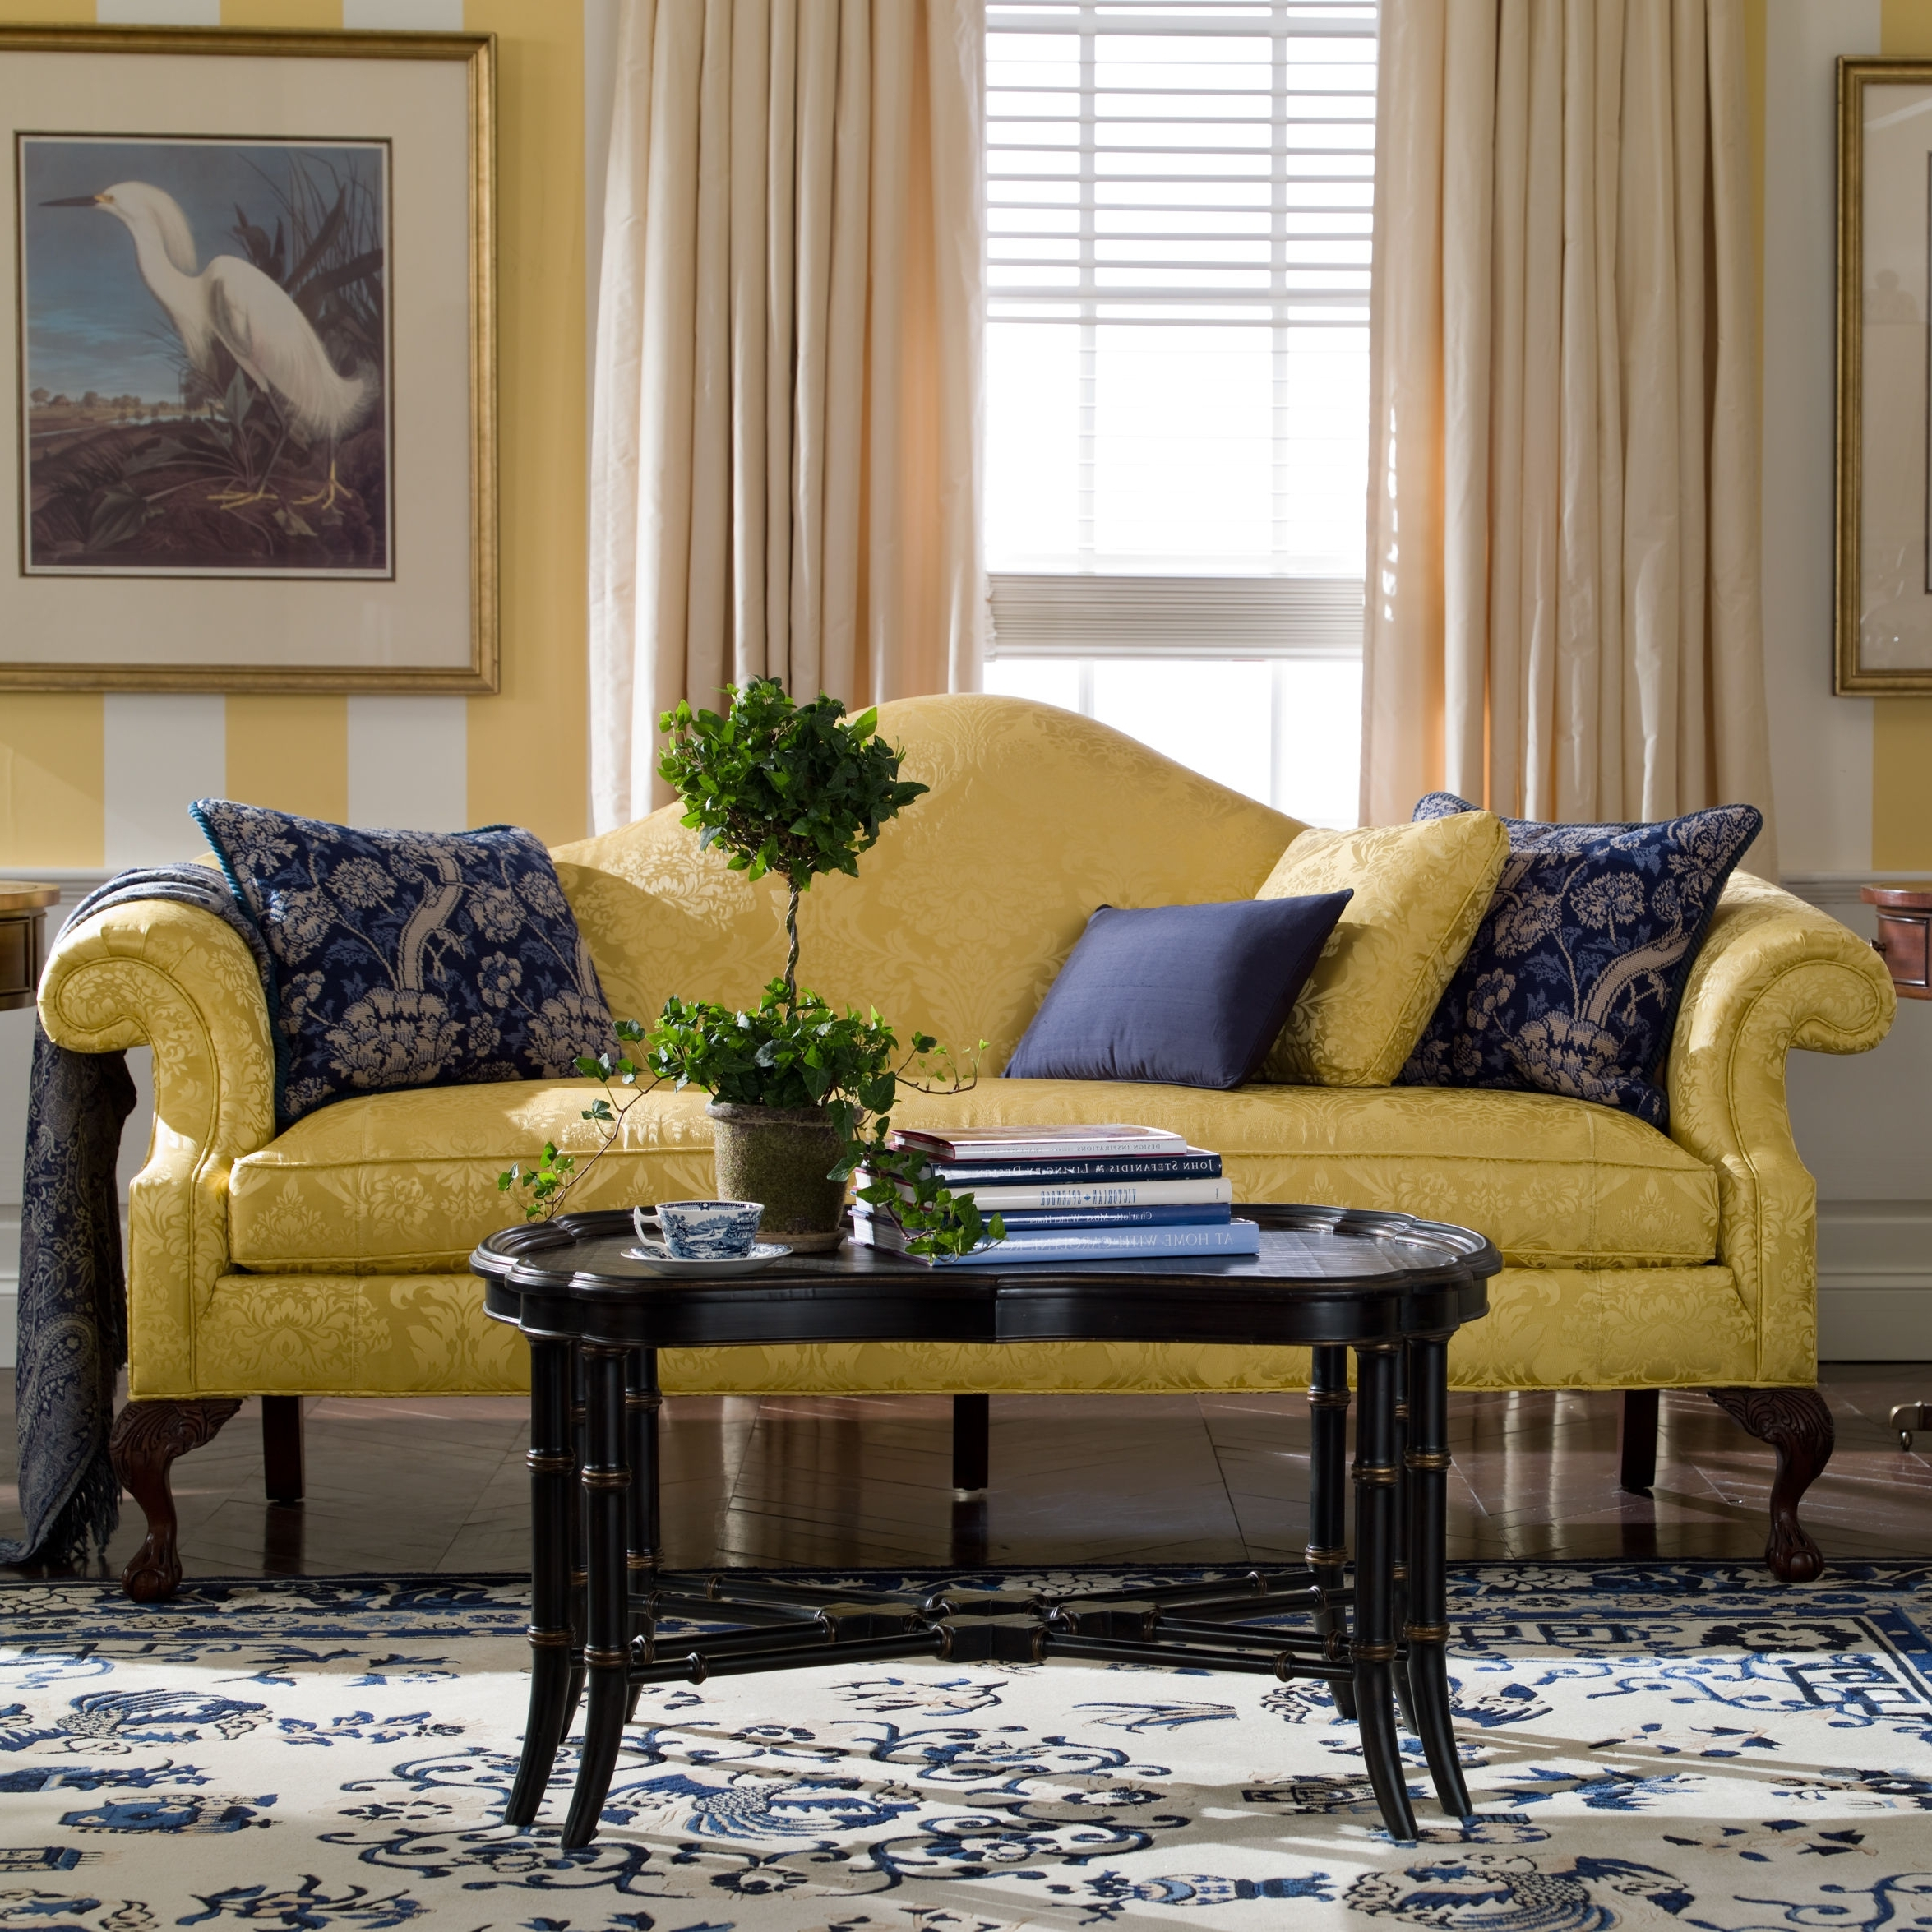 Most Current Ethan Allen Sofas And Chairs Pertaining To Hepburn Sofa – Ethan Allen (With Different Fabric) (View 10 of 15)